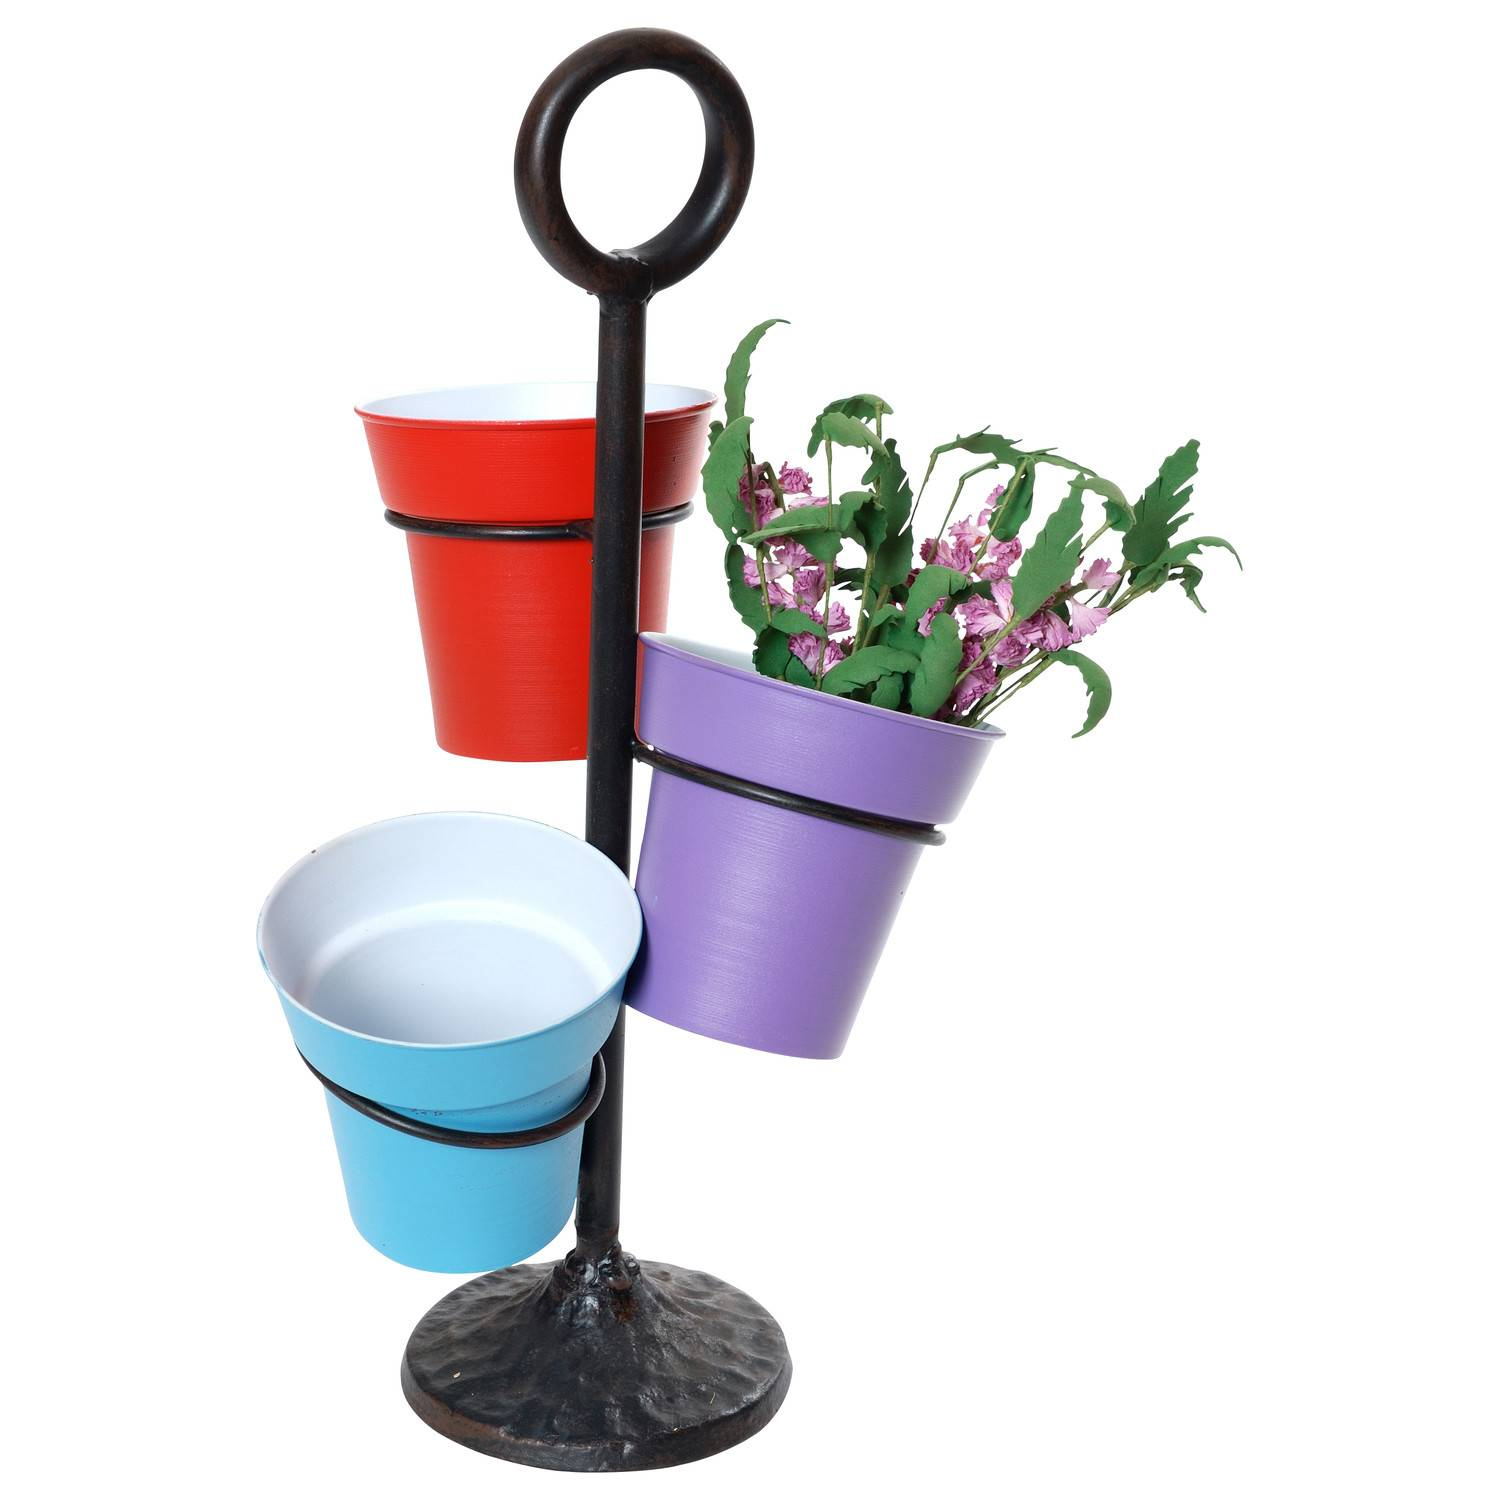 Flower Pot Stand with Handle Cast Base, 3 Station Wire Rack